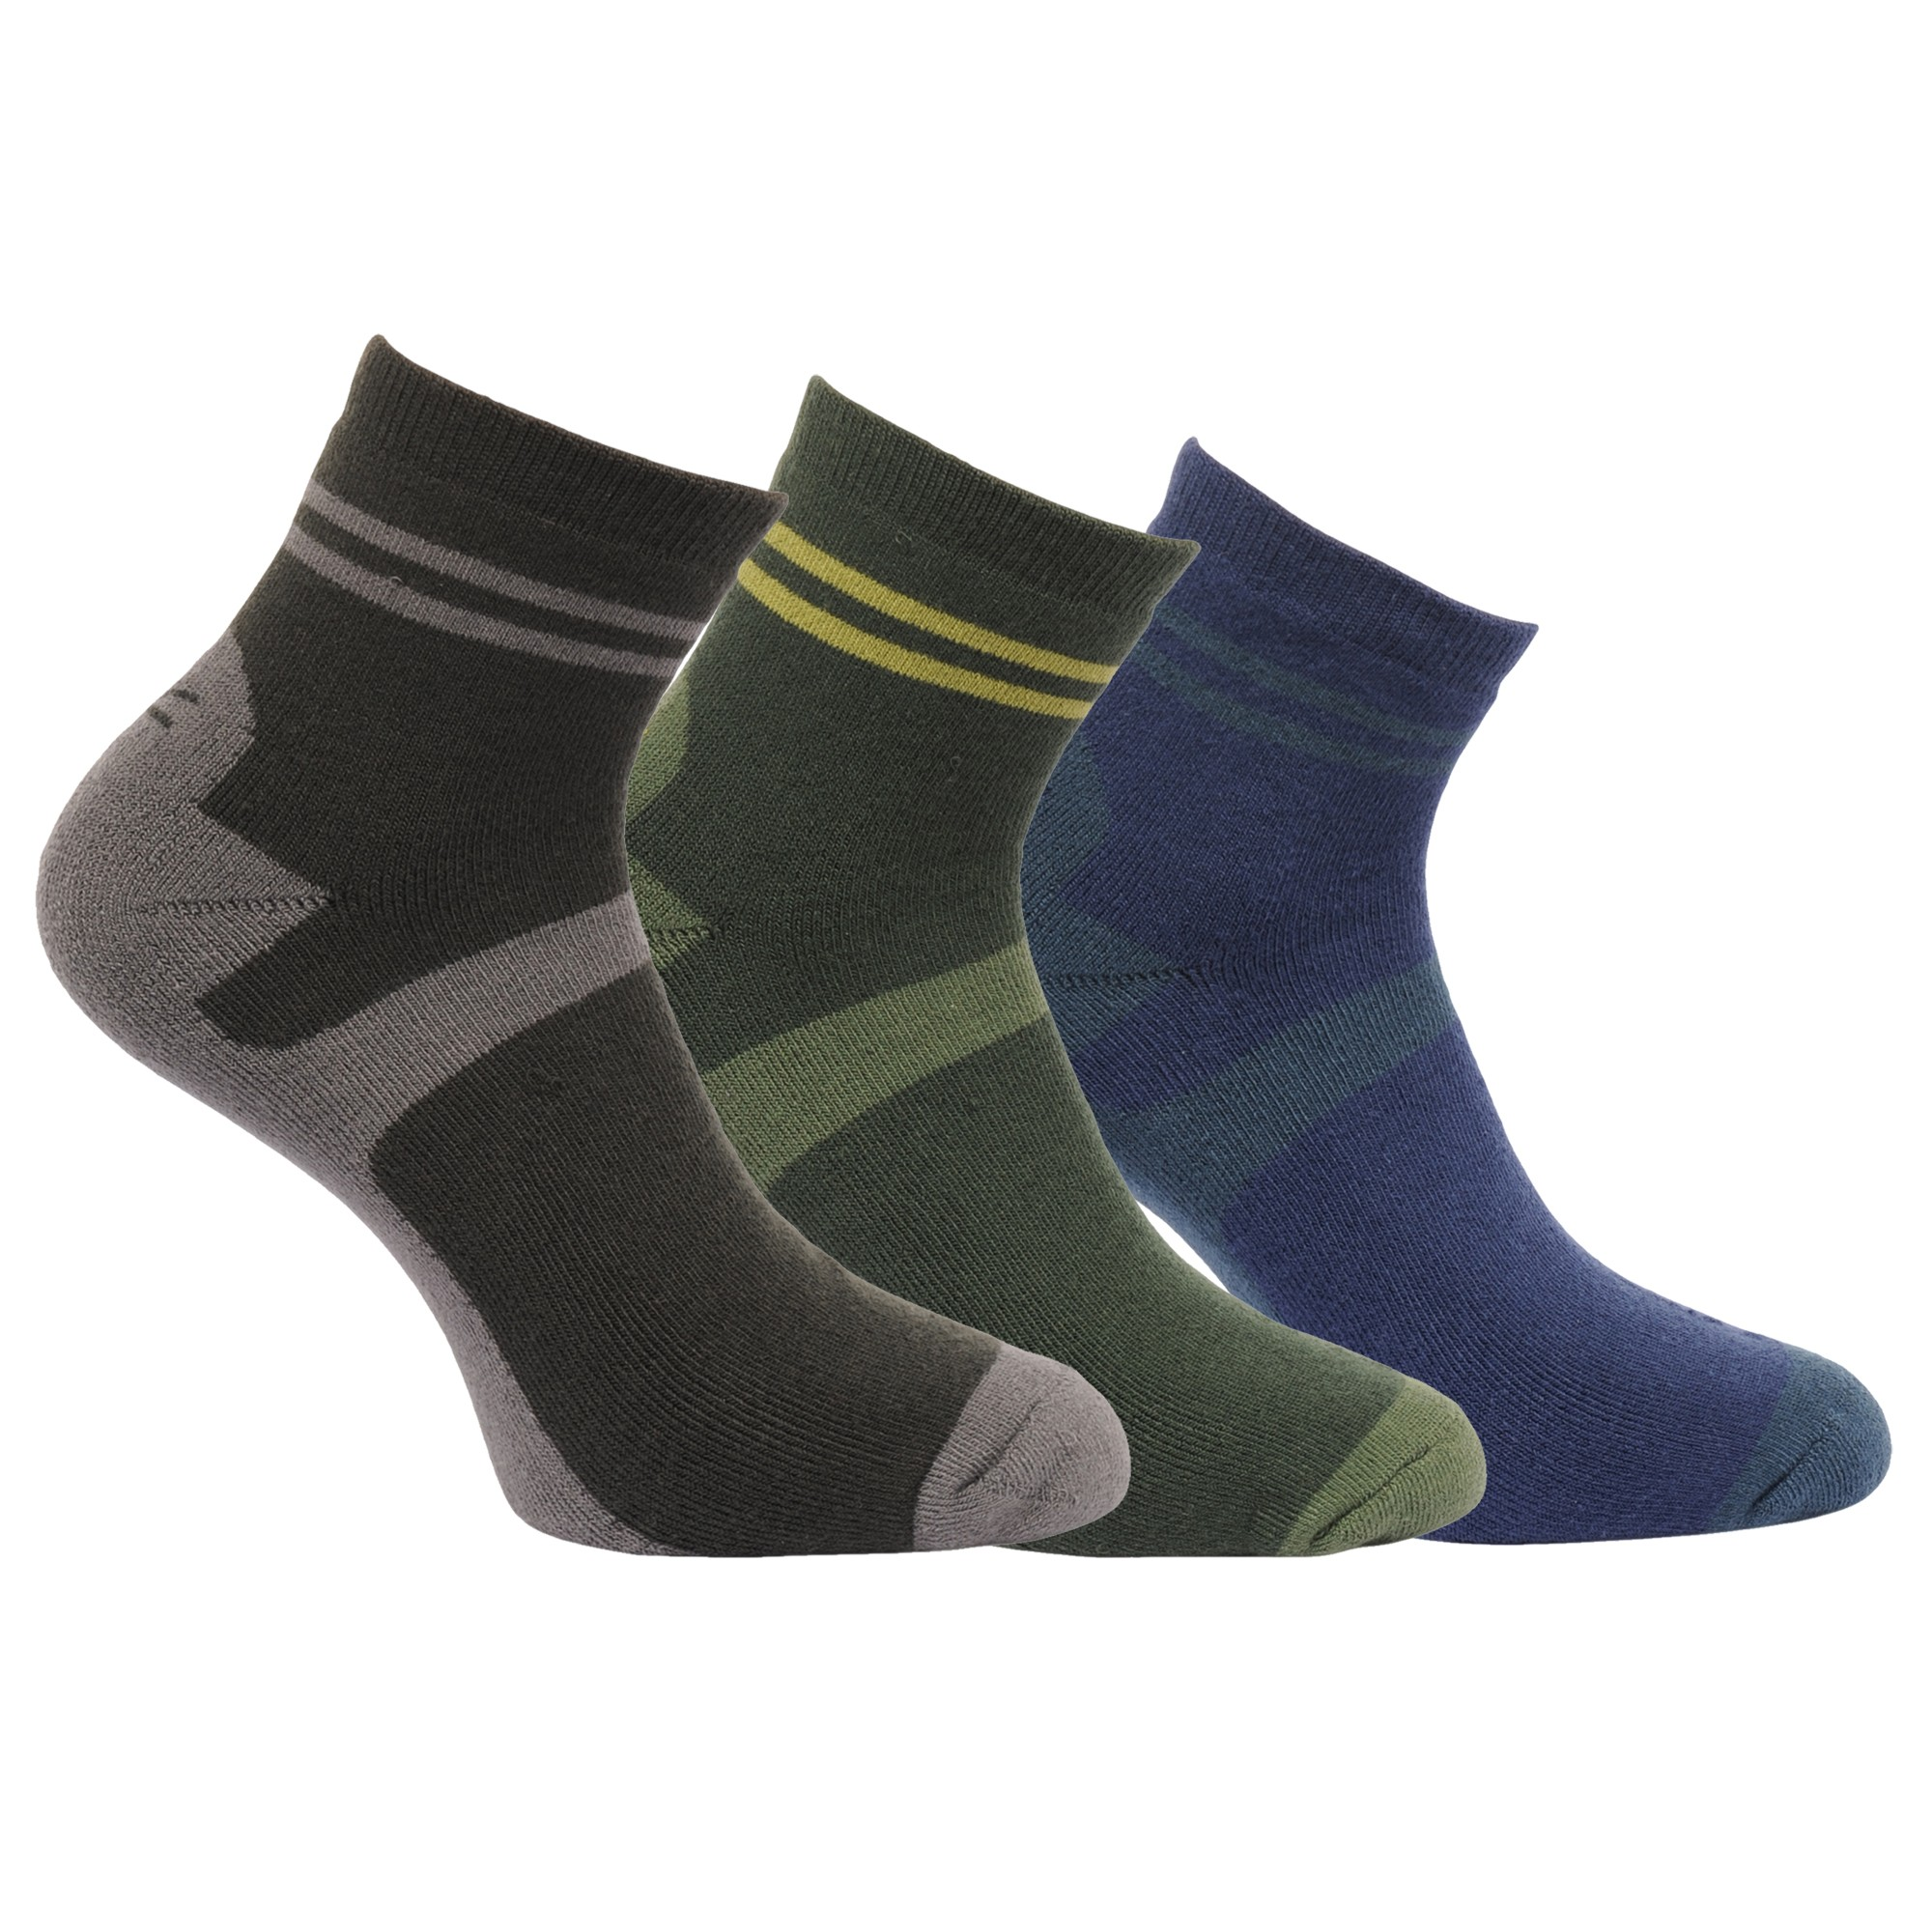 Regatta Great Outdoors Mens Cushioned Active Lifestyle Walking Socks Pack Of 2